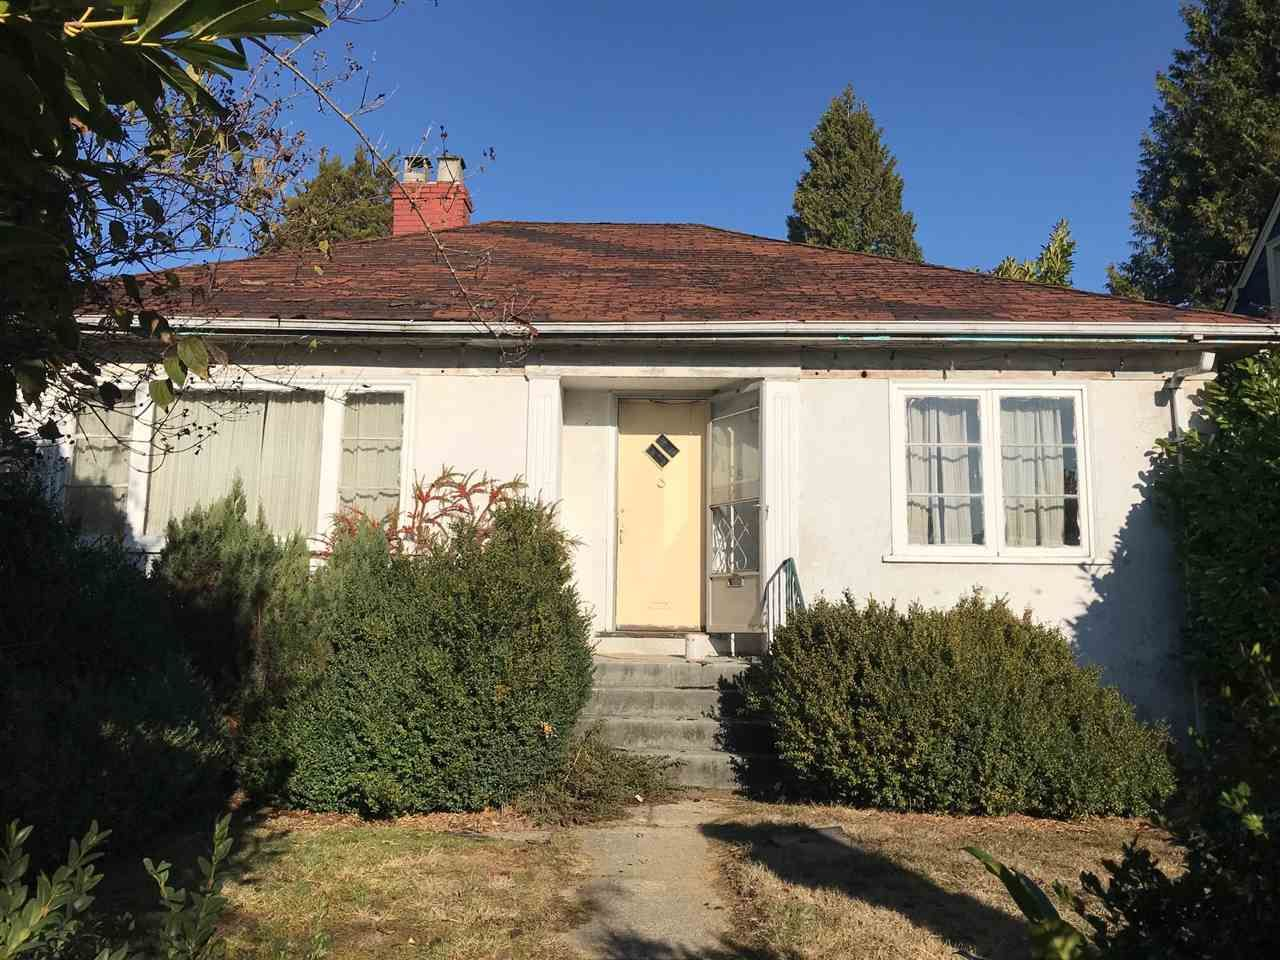 Main Photo: 1759 W 60TH Avenue in Vancouver: South Granville House for sale (Vancouver West)  : MLS®# R2227150